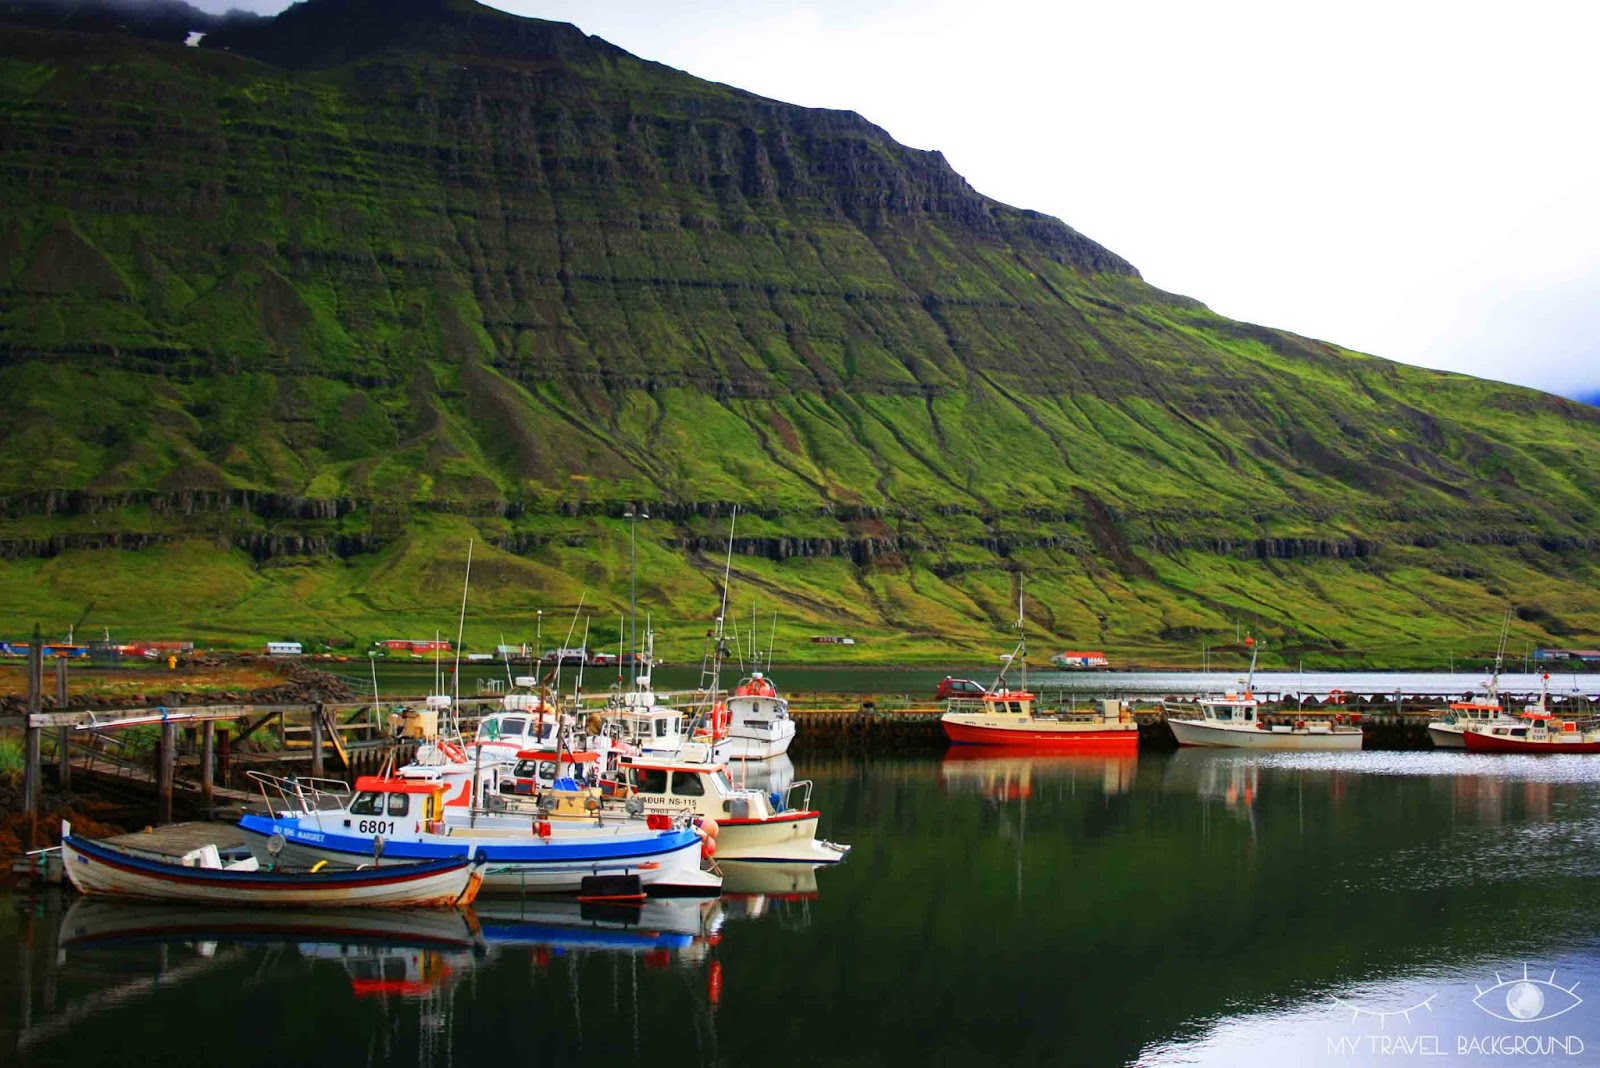 My Travel Background : 6 villes et villages découverts en 2016 - Seydisfjördur, Islande